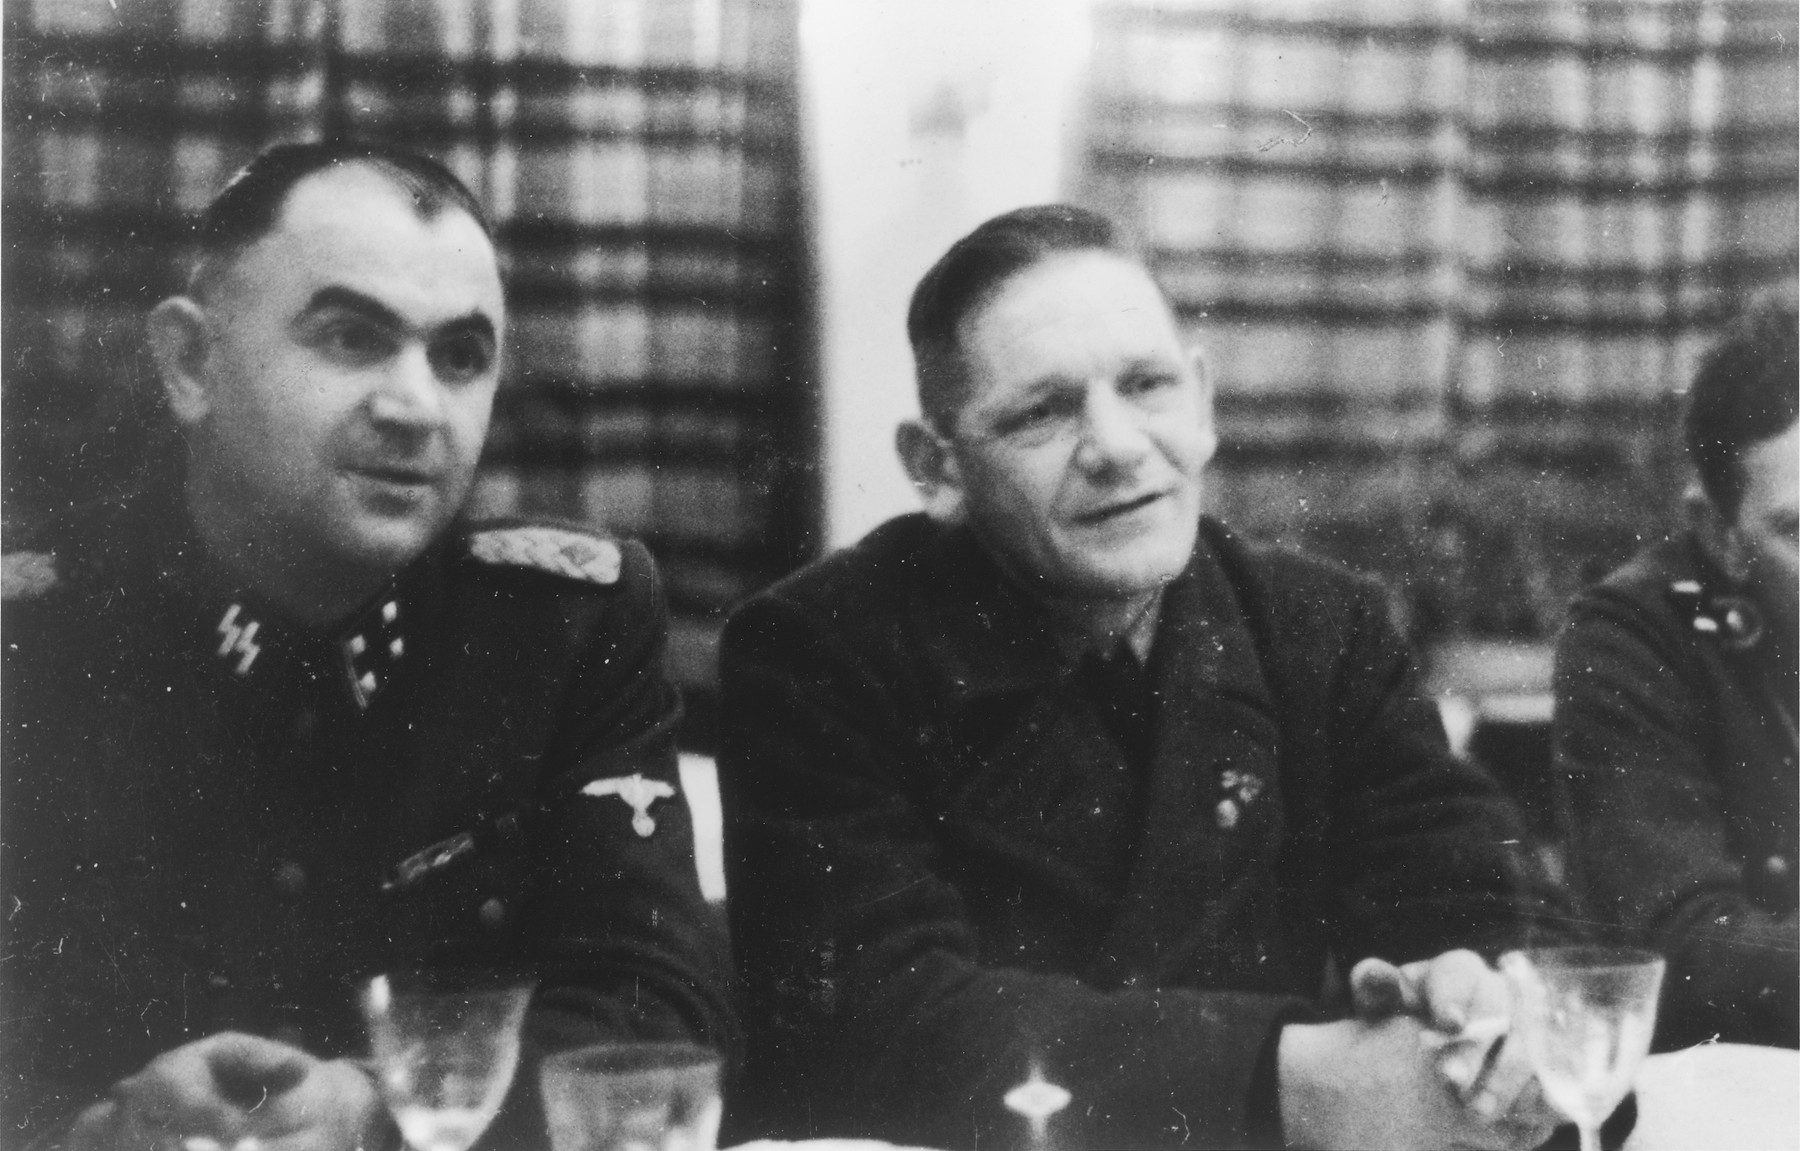 Two SS officers gather for drinks in a hunting lodge.  Pictured on the lett is Karl Moeckel.